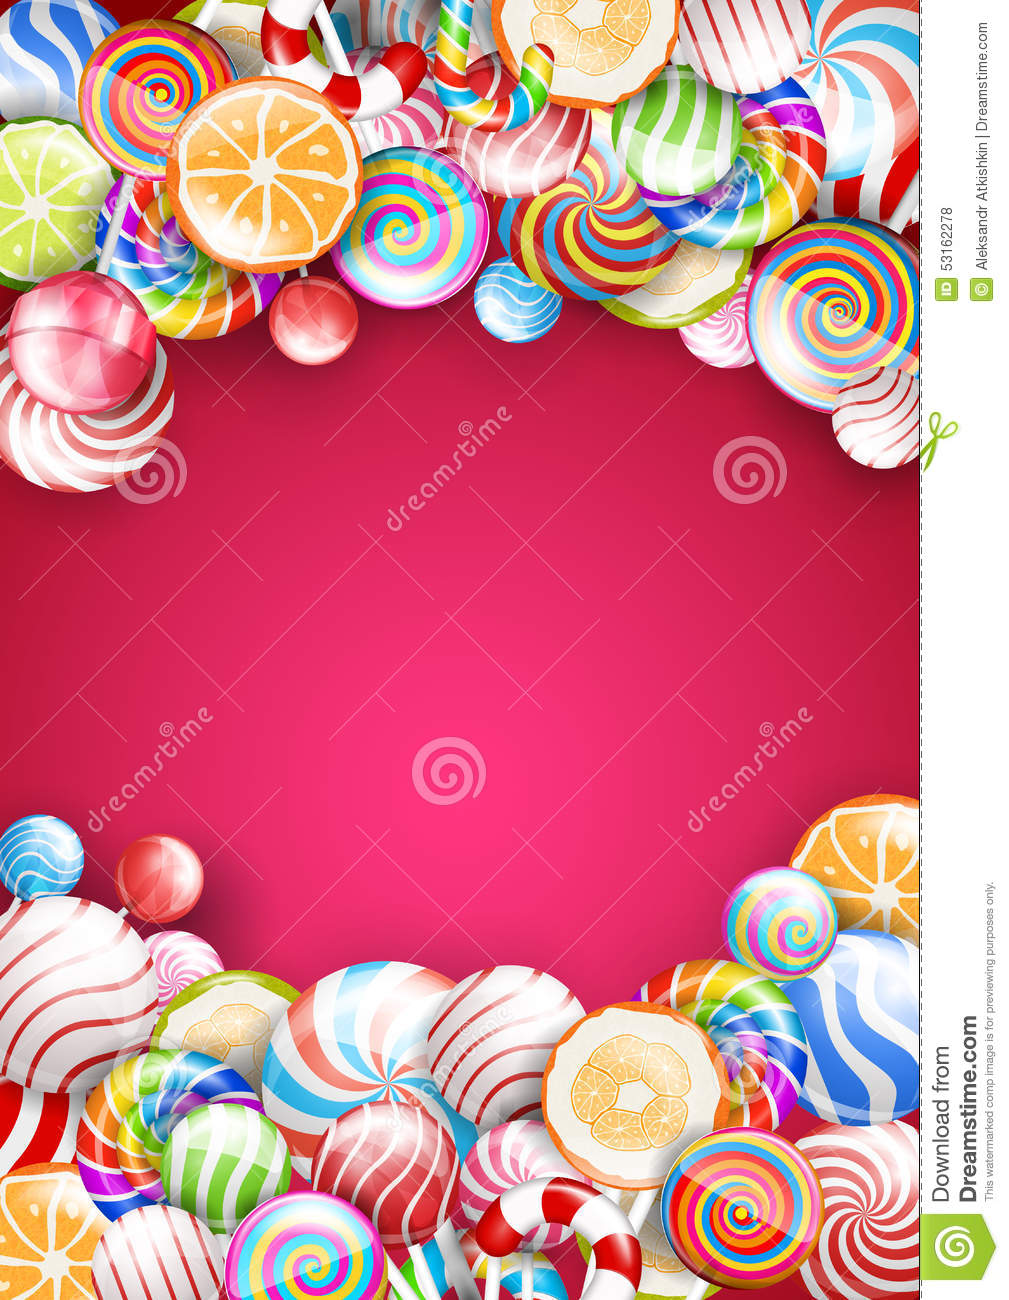 Candy S Colorado Cranker Blog Csm Tools For Cranking: Candys Stock Vector. Illustration Of Group, Icons